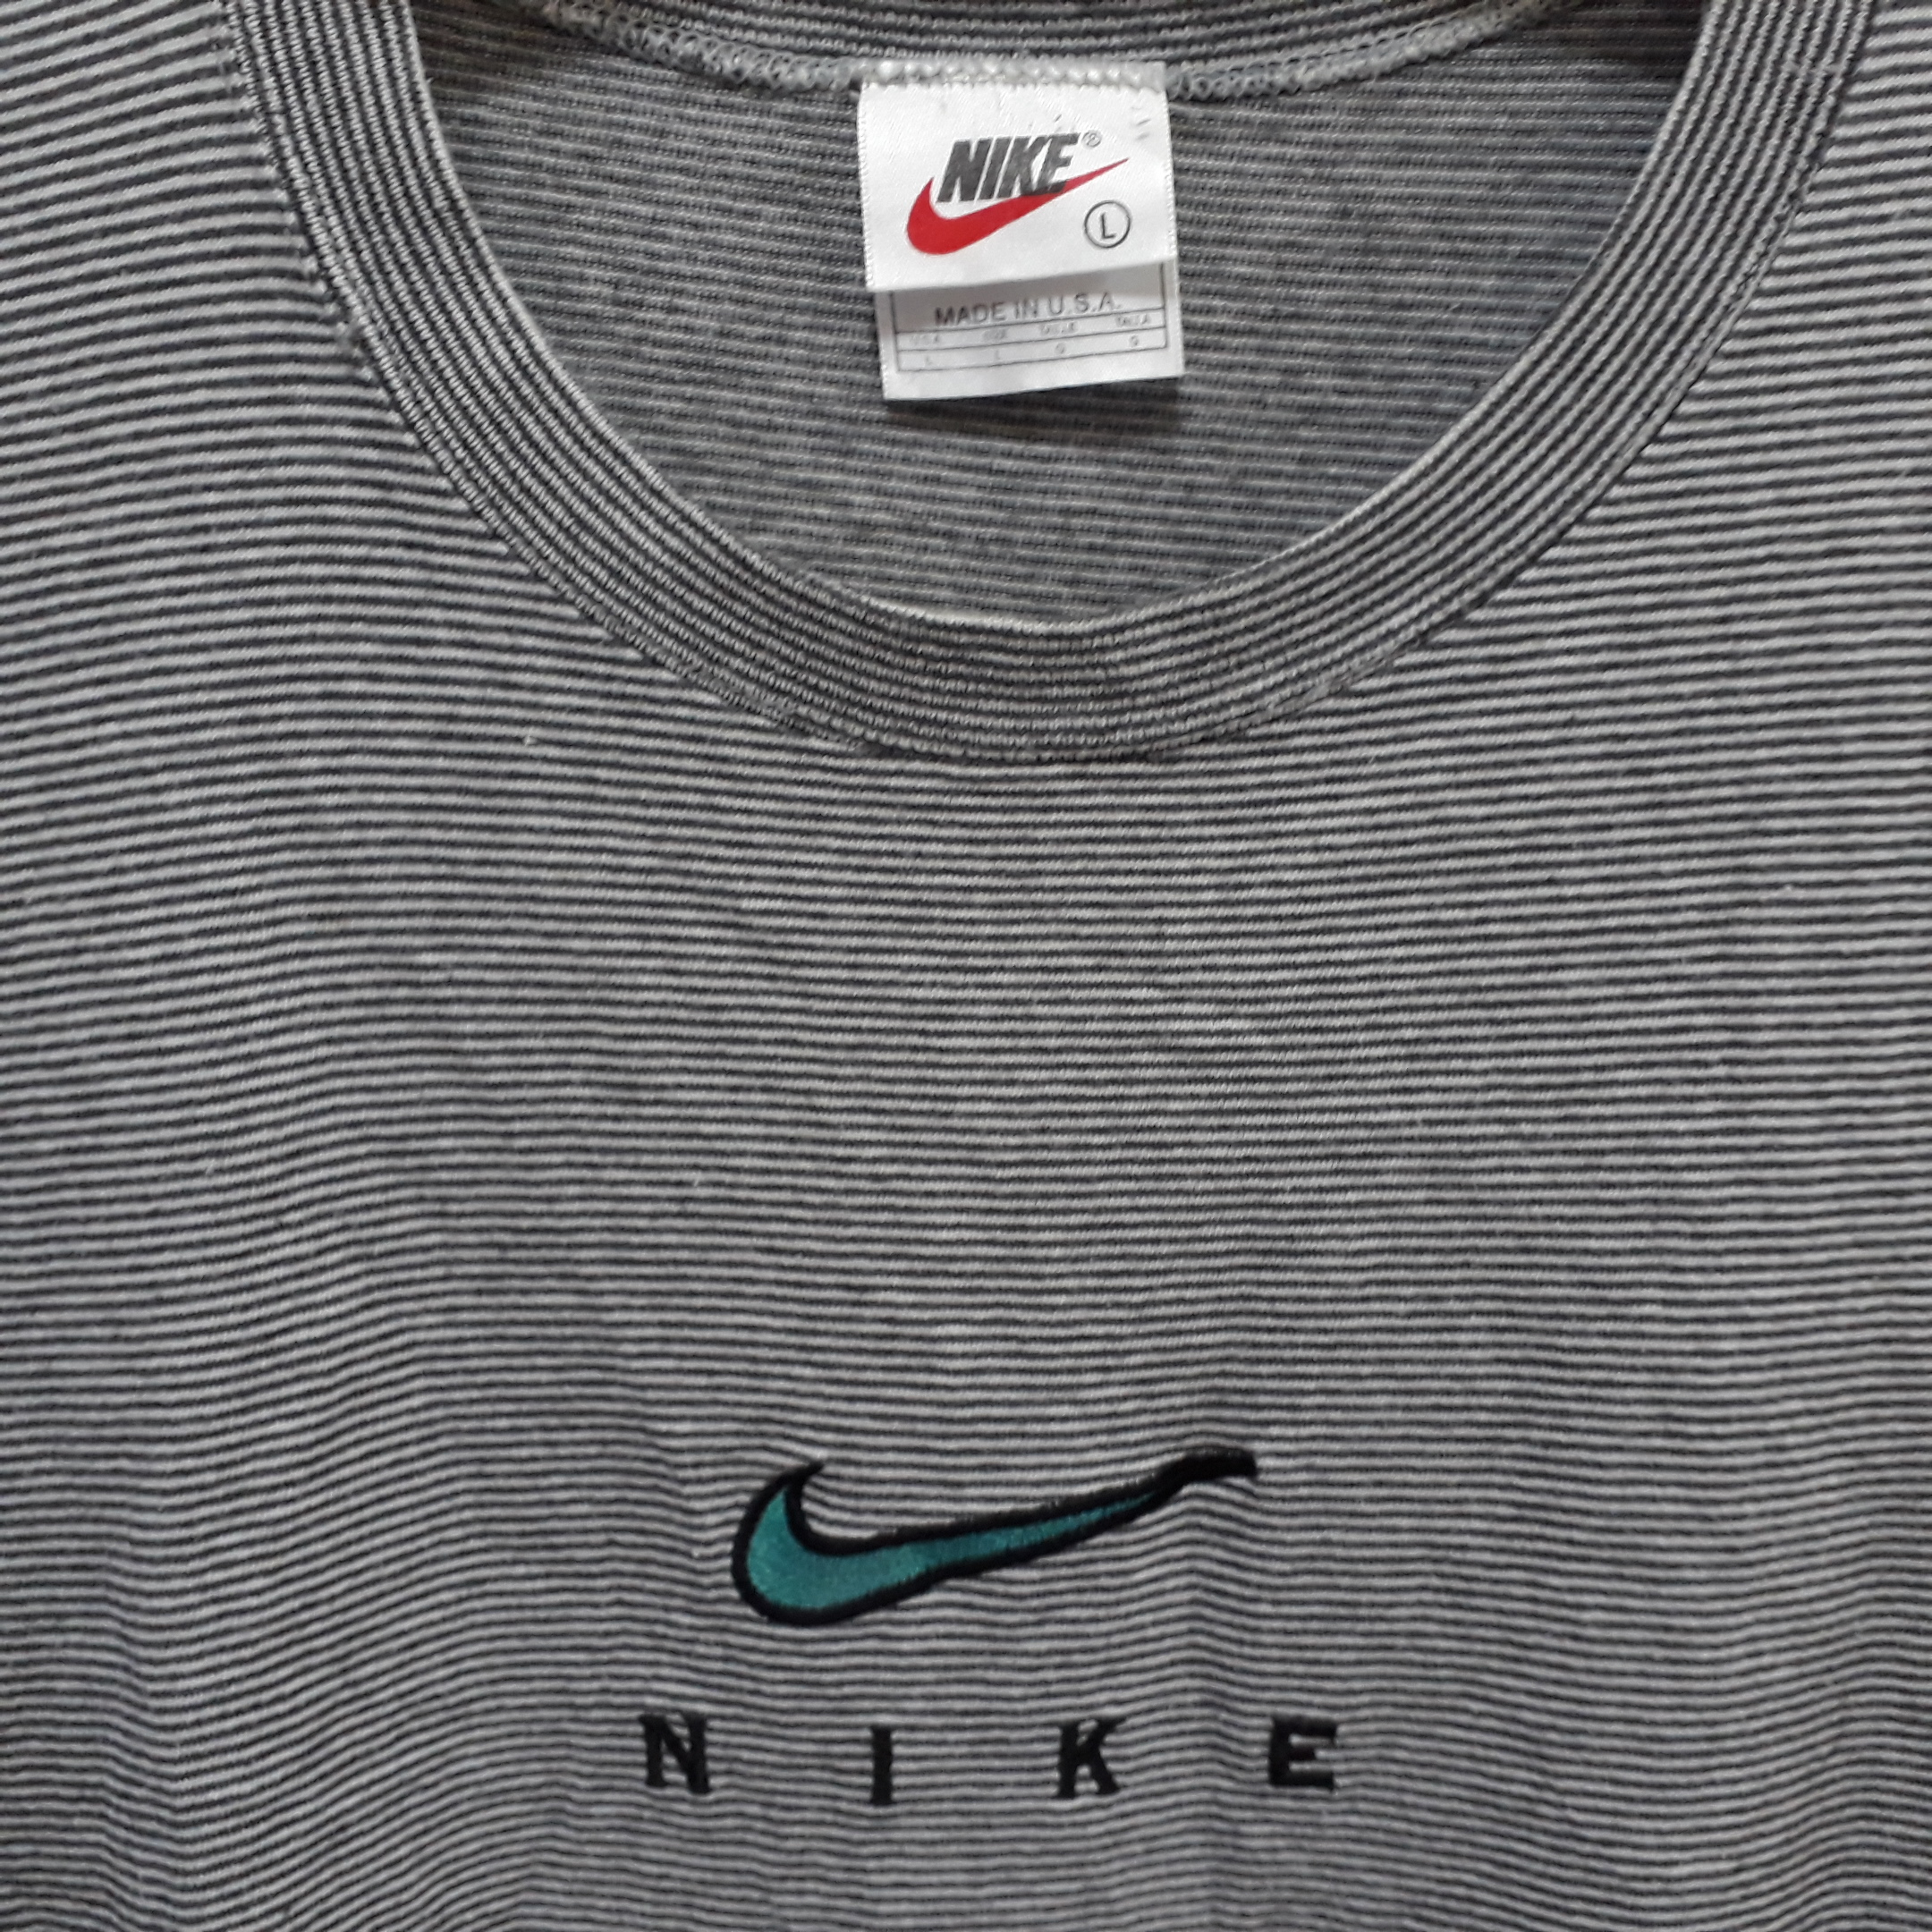 acc2fbc50 Nike. Vintage 90s NIKE Striped T Shirt Swoosh Logo Embroidered Made in USA  Air Jordan Force good condition. Size: US L / EU 52-54 ...